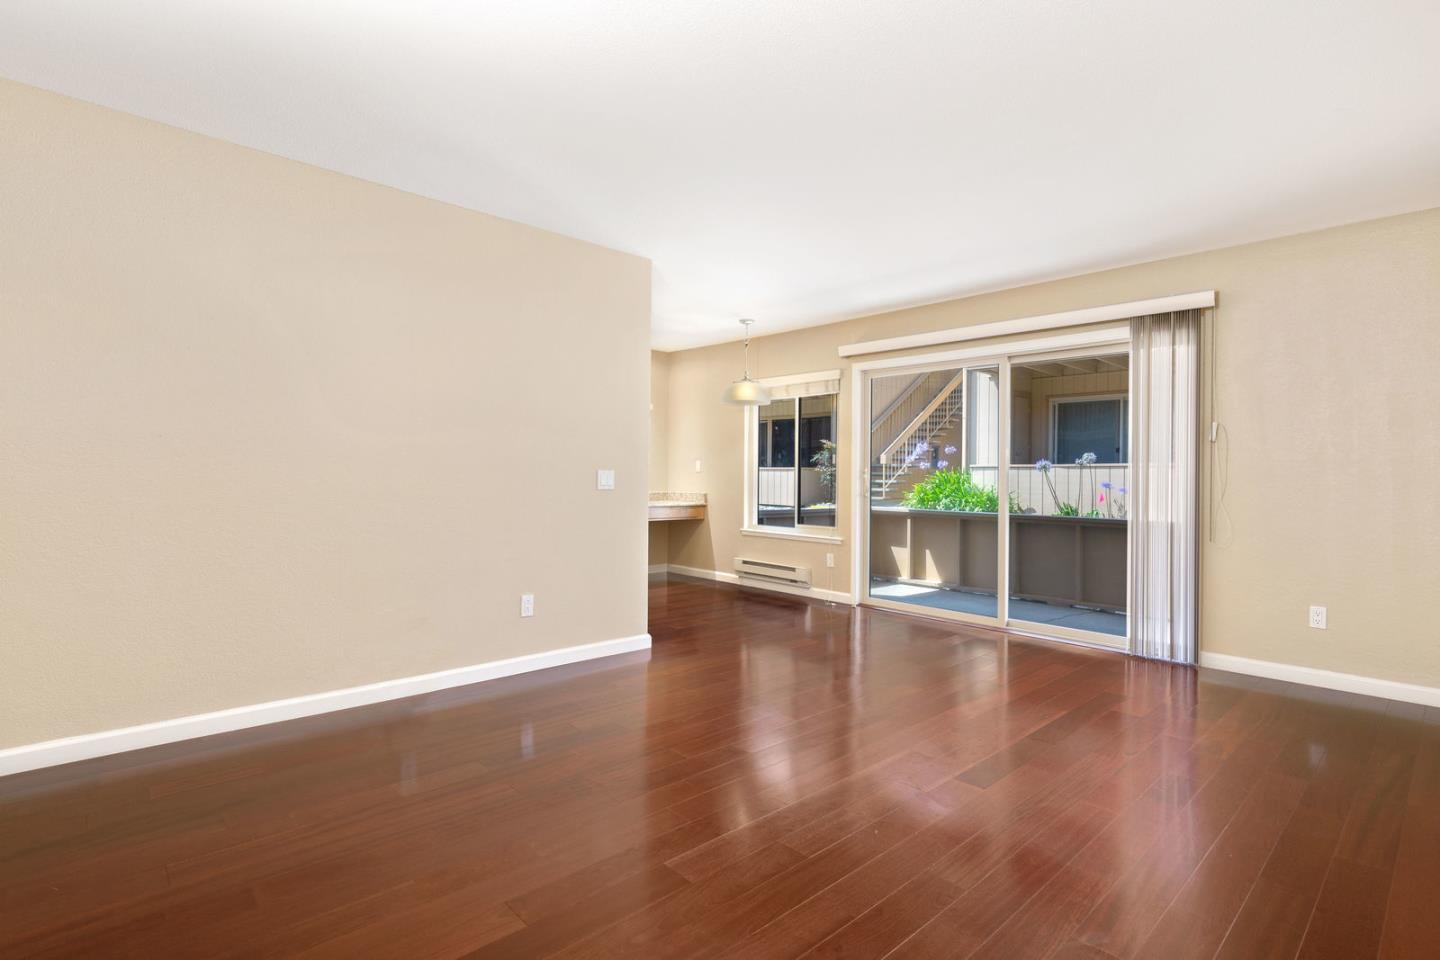 300 Glenwood Circle Unit 175 Monterey, CA 93940 - MLS #: ML81710351